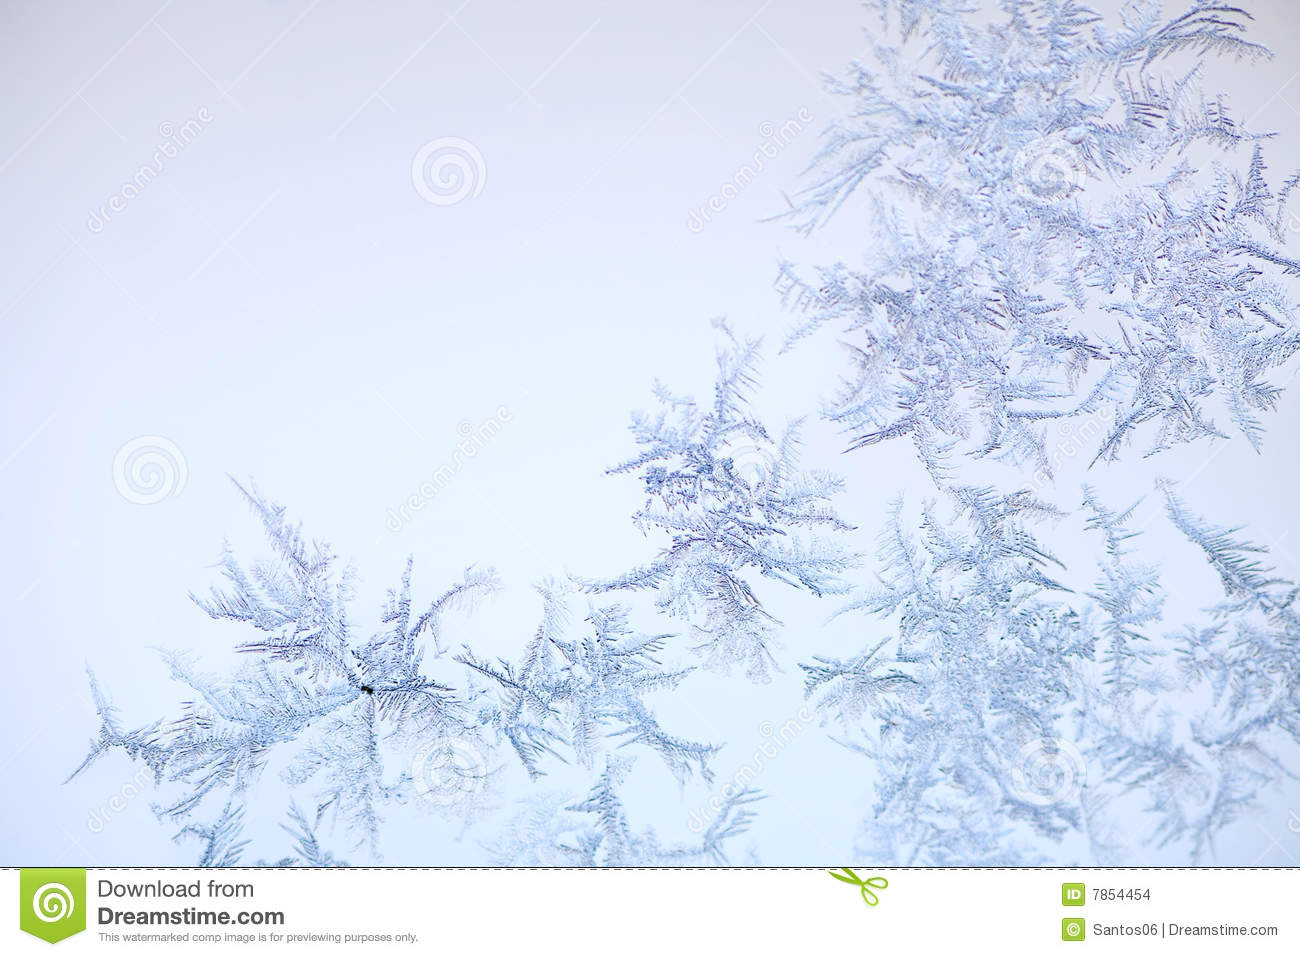 Frostmuster